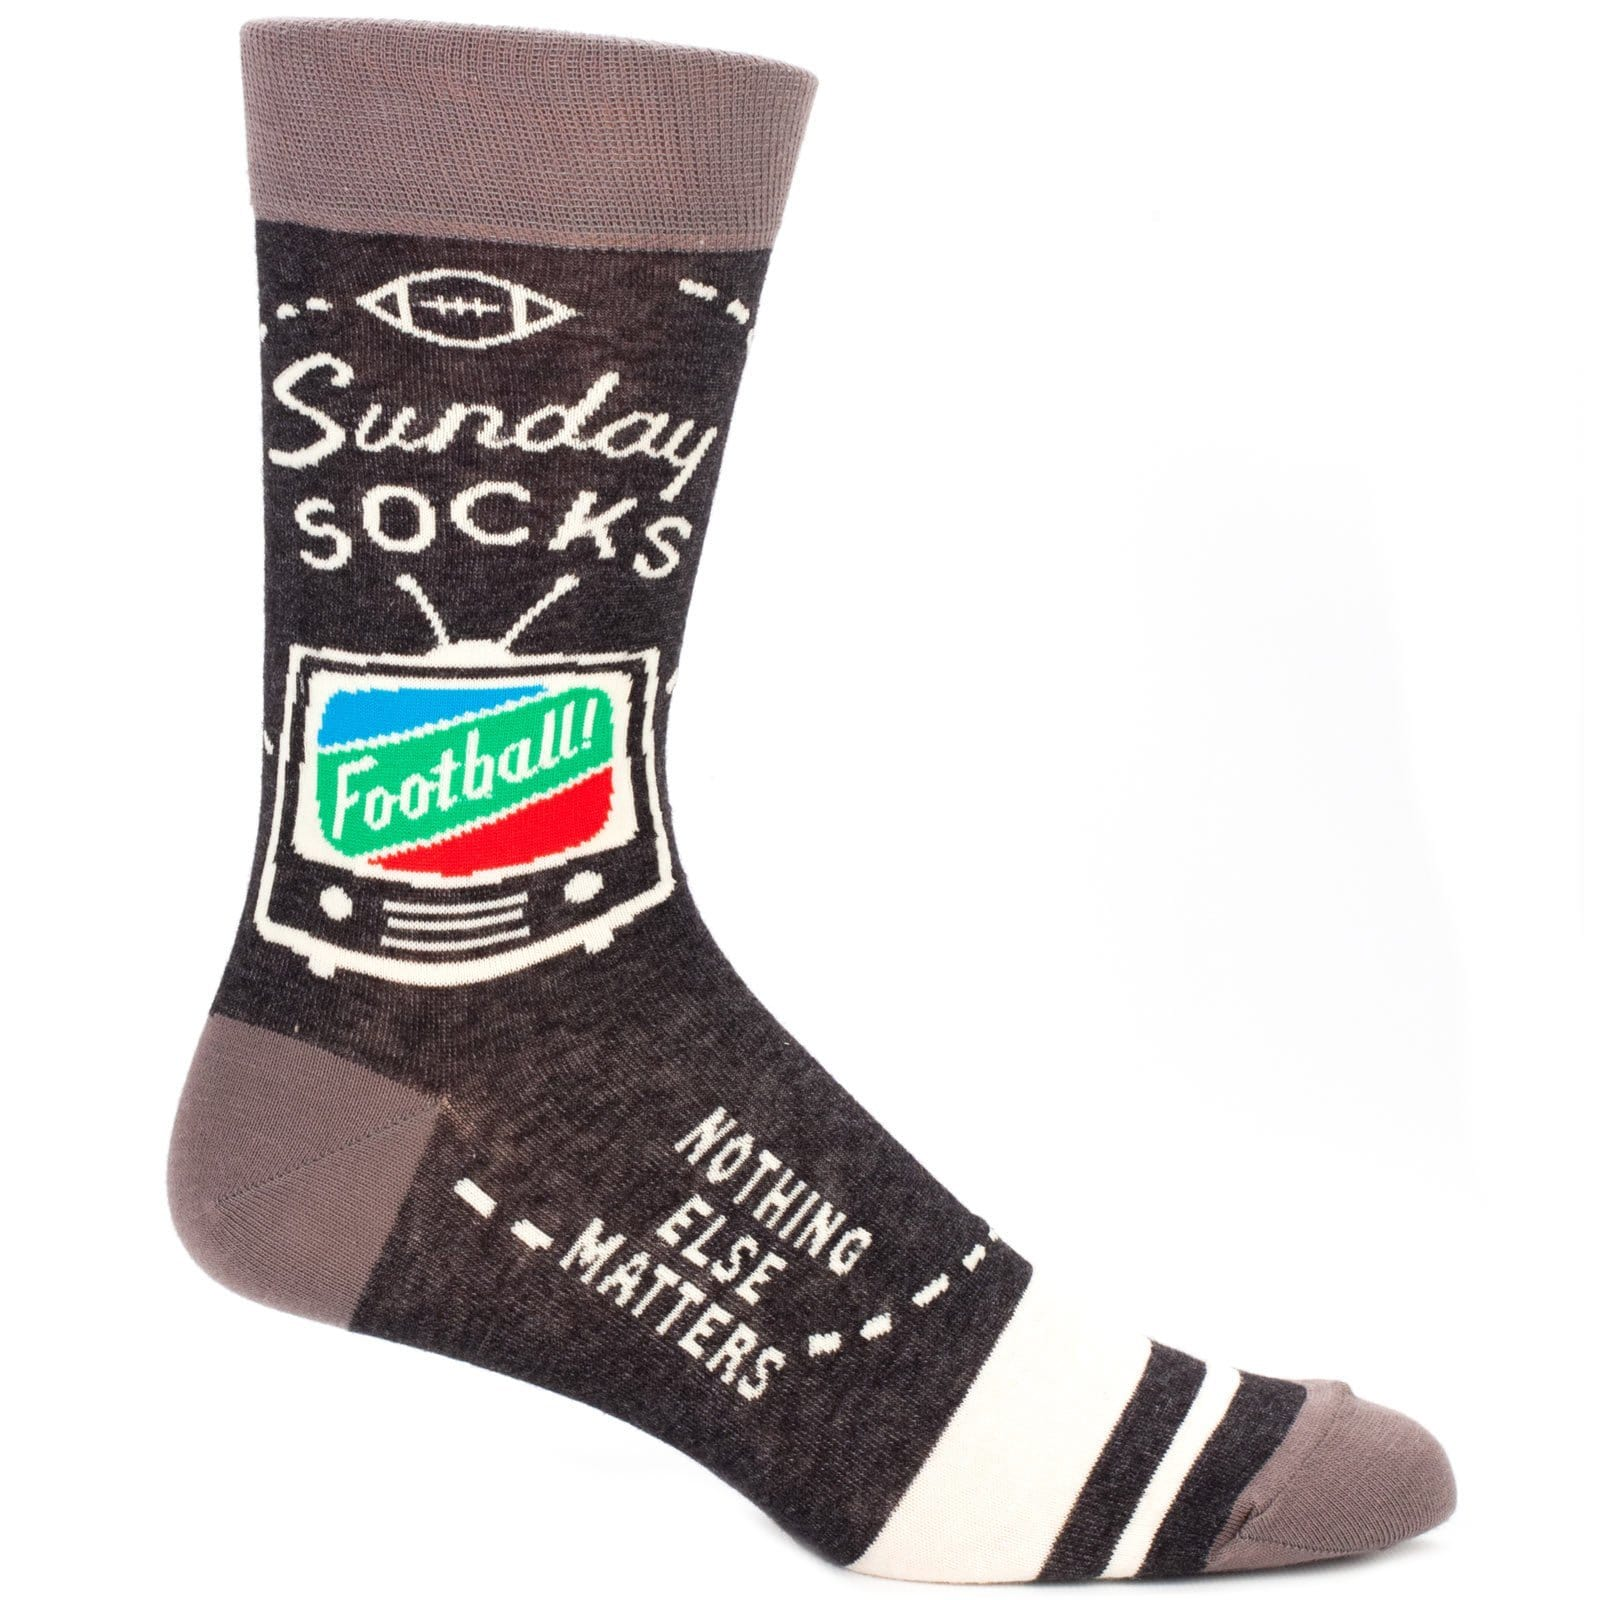 Sunday Socks Mens Socks